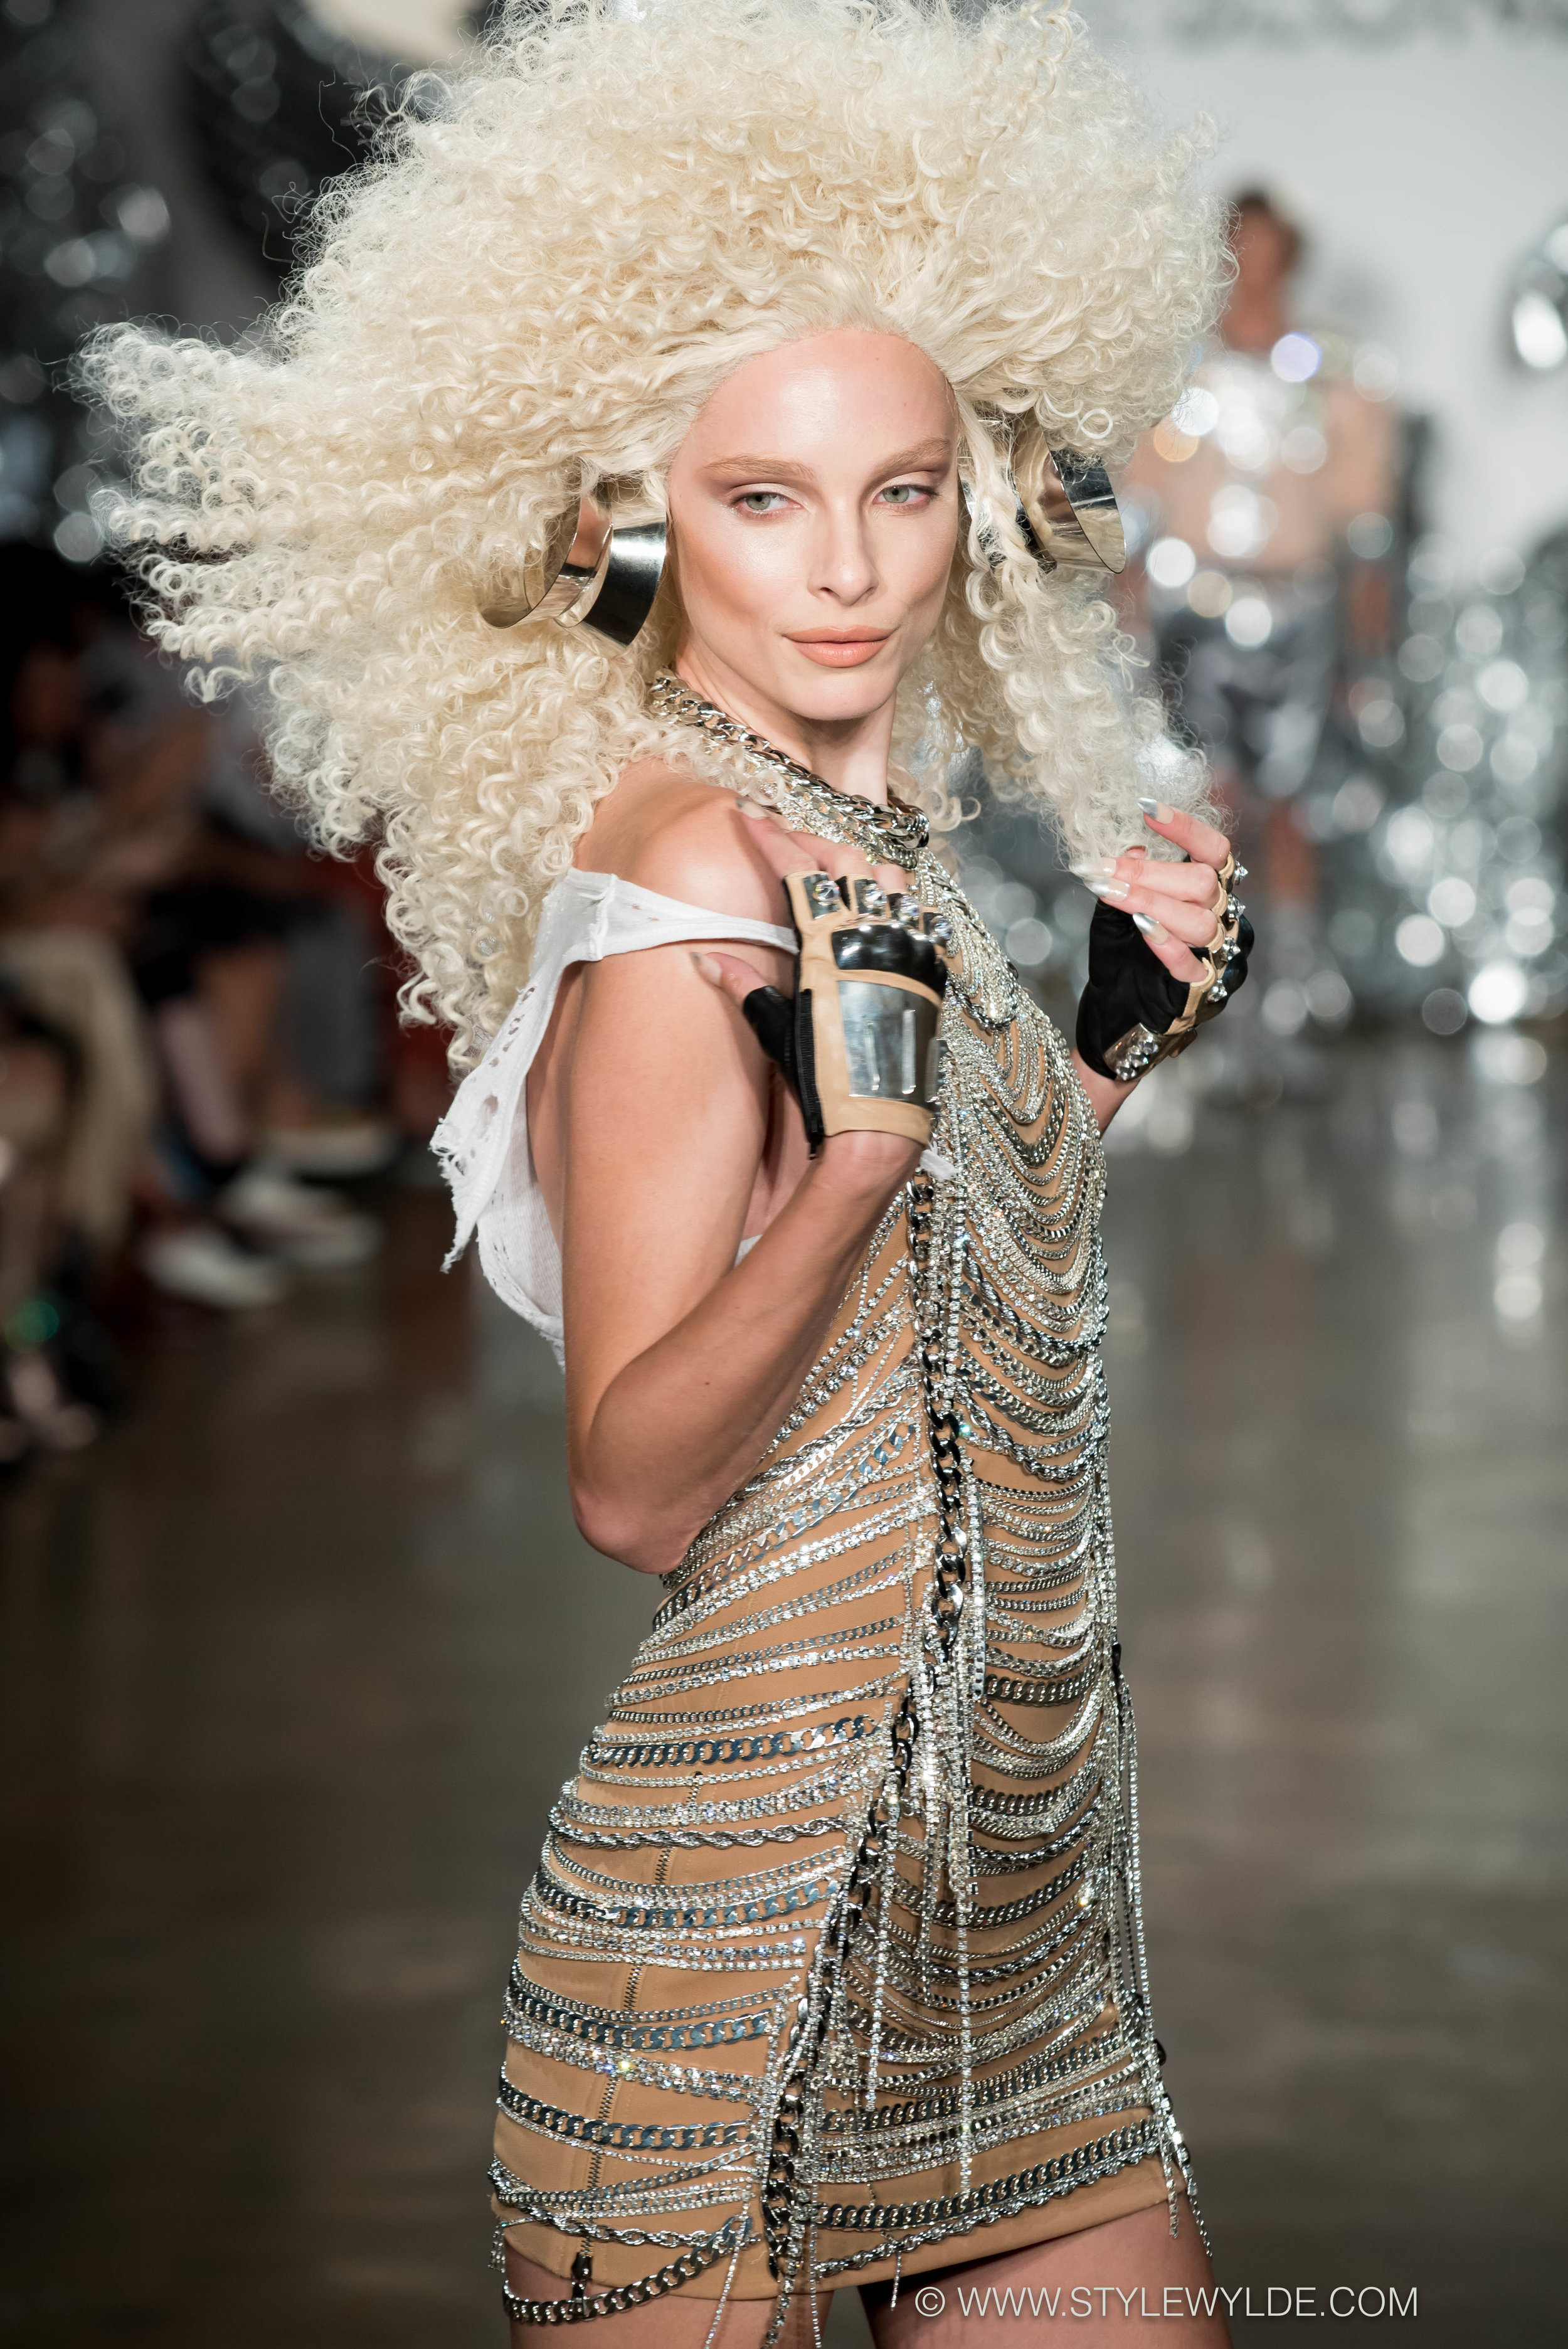 stylewylde-The Blonds SS17-FOH- Edits-18.jpg